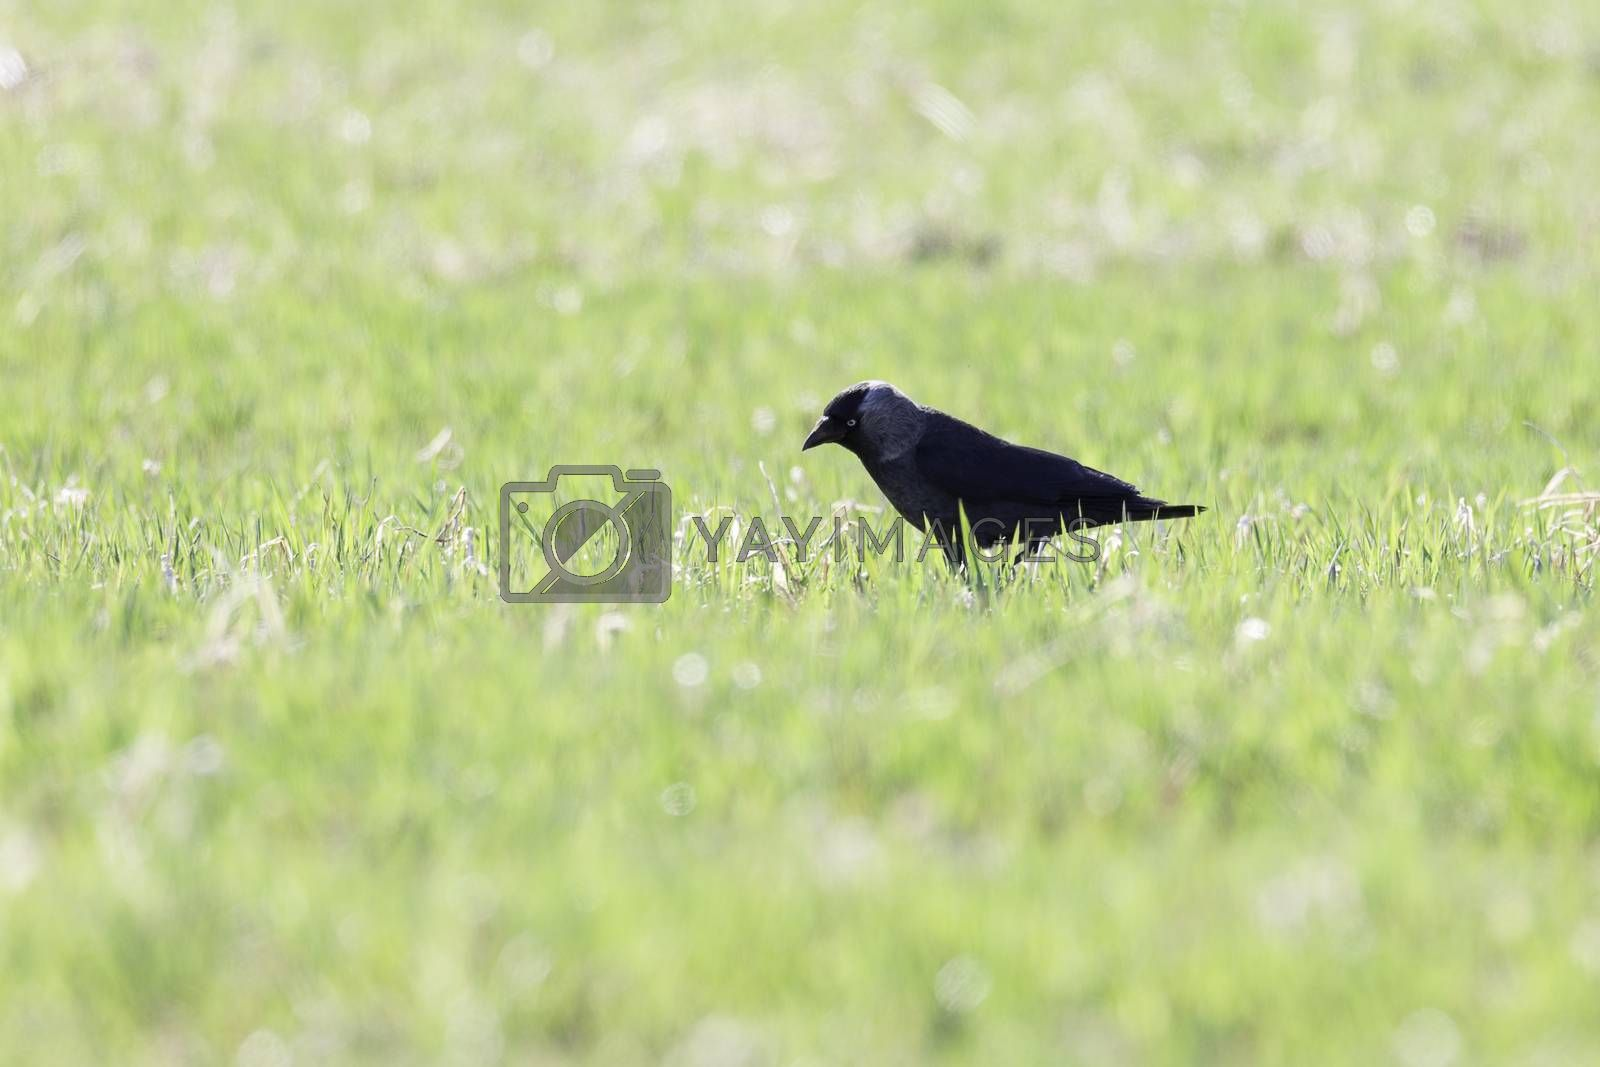 Jackdaw Looking for food in grass.